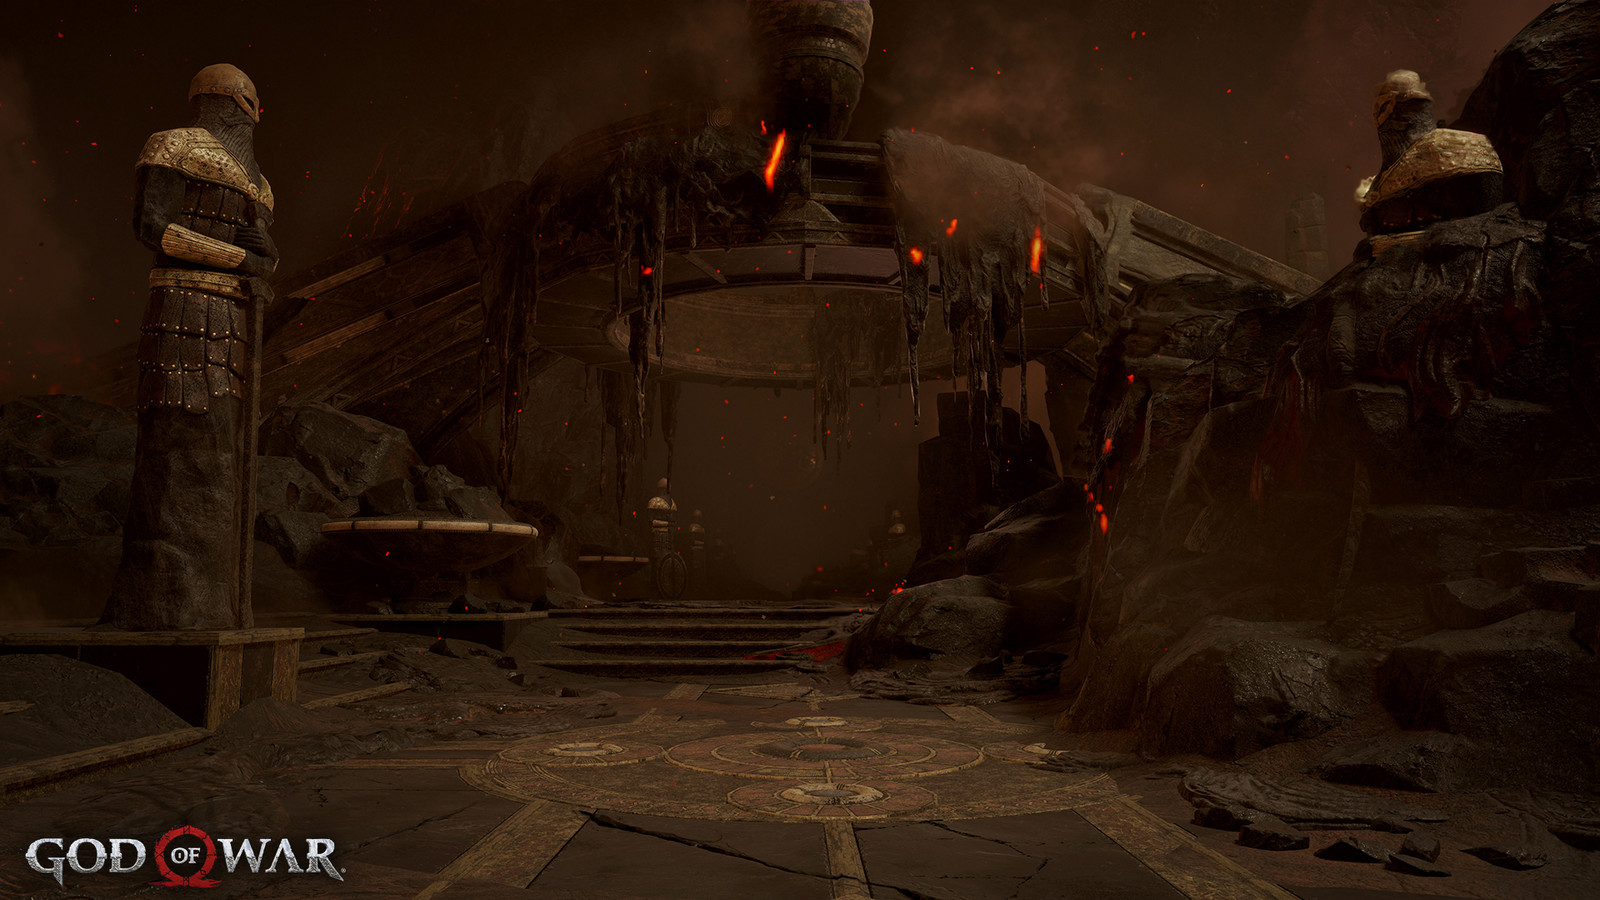 Caldera bridge was provided to us. I made new mat swaps for Muspelheim's version of the bridge. Reza Fakharieh did the first lighting pass, I took over to do more iterations plus doing the color grading. I also did the set-dressing and perf work.